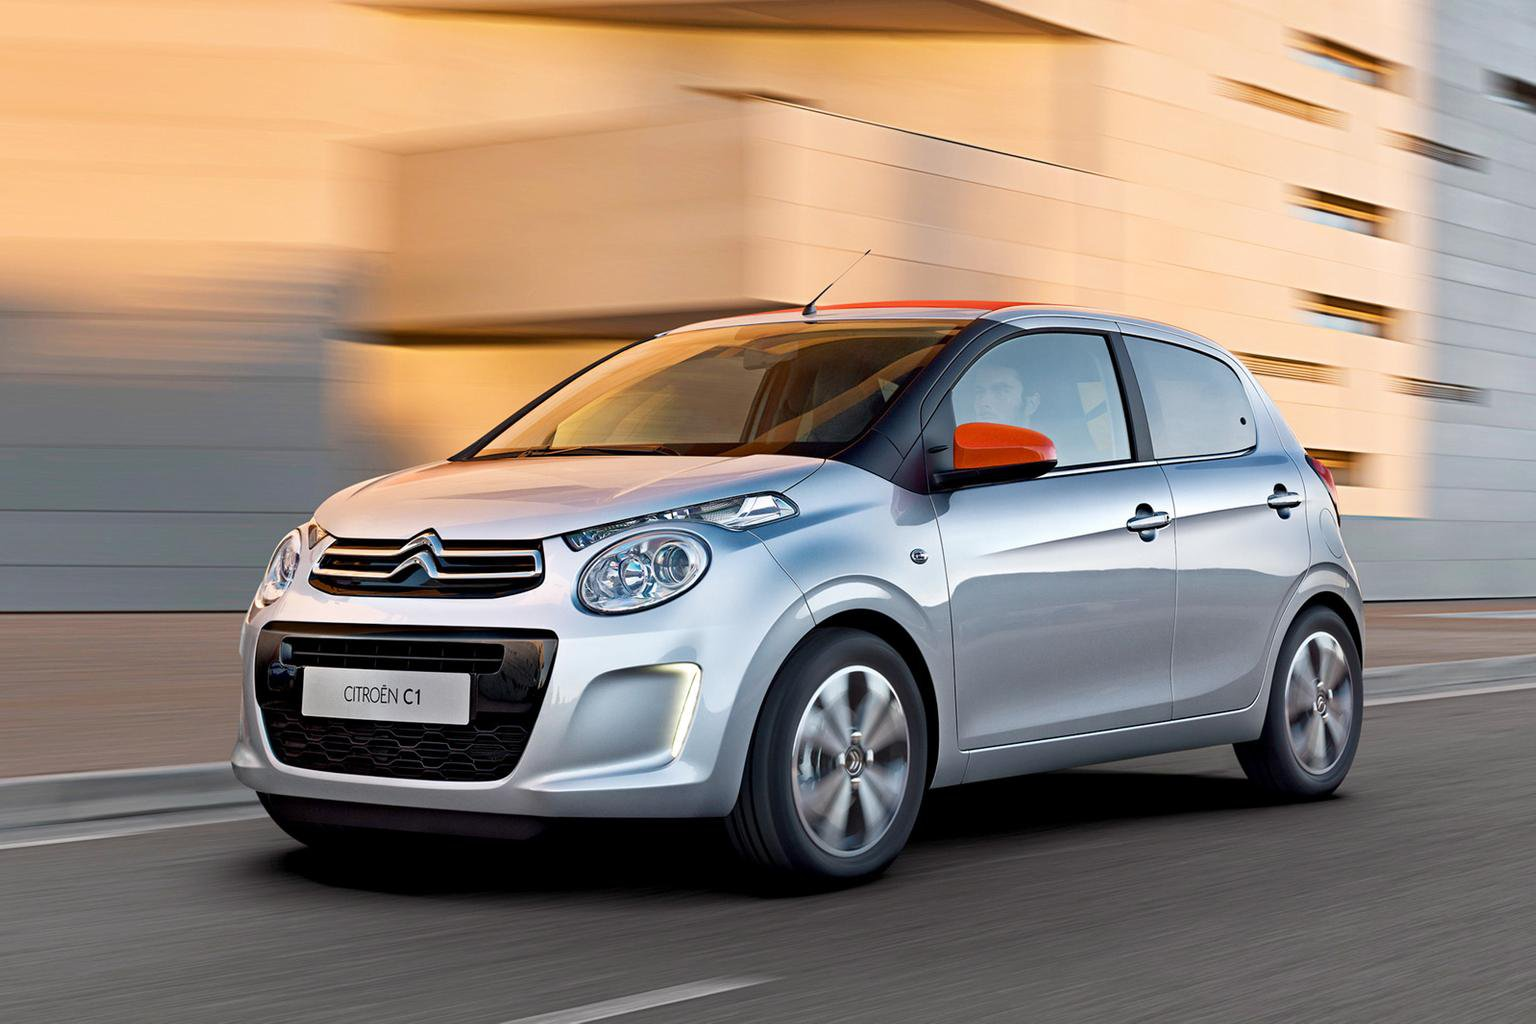 2014 Citroen C1 priced from 8245